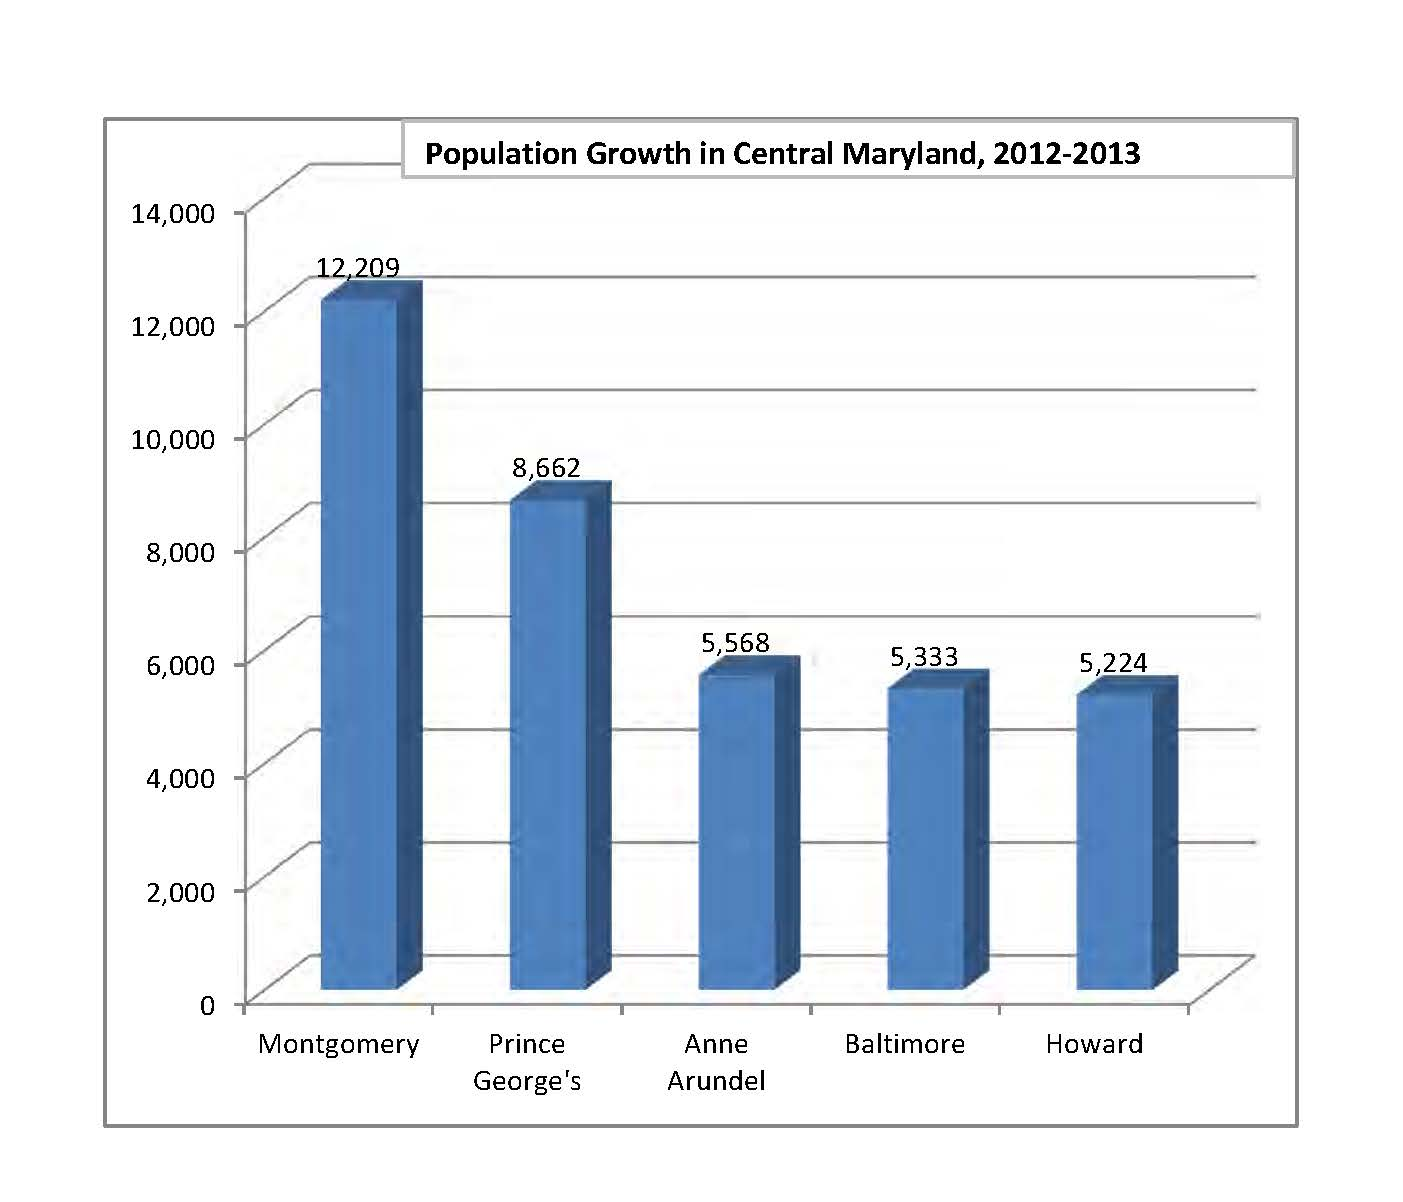 Population Growth in Central Maryland 2012-2013 Chart